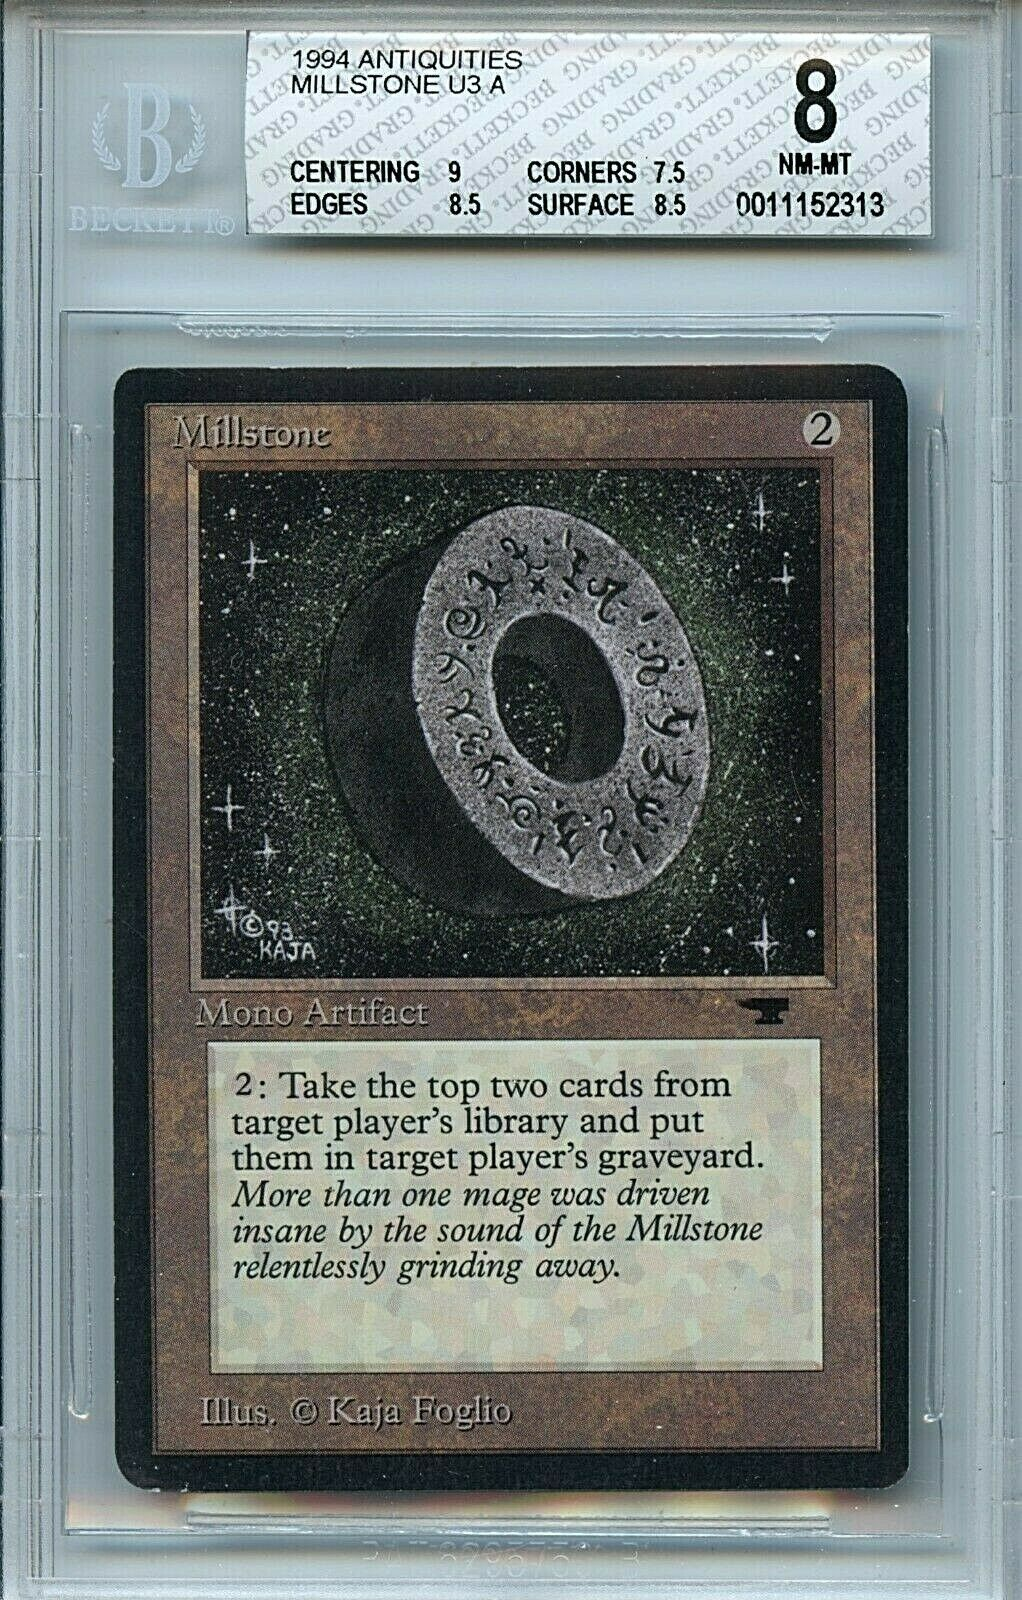 MTG Antiquities Millstone BGS 8.0 (8) NM MT magic card Amricons 2313